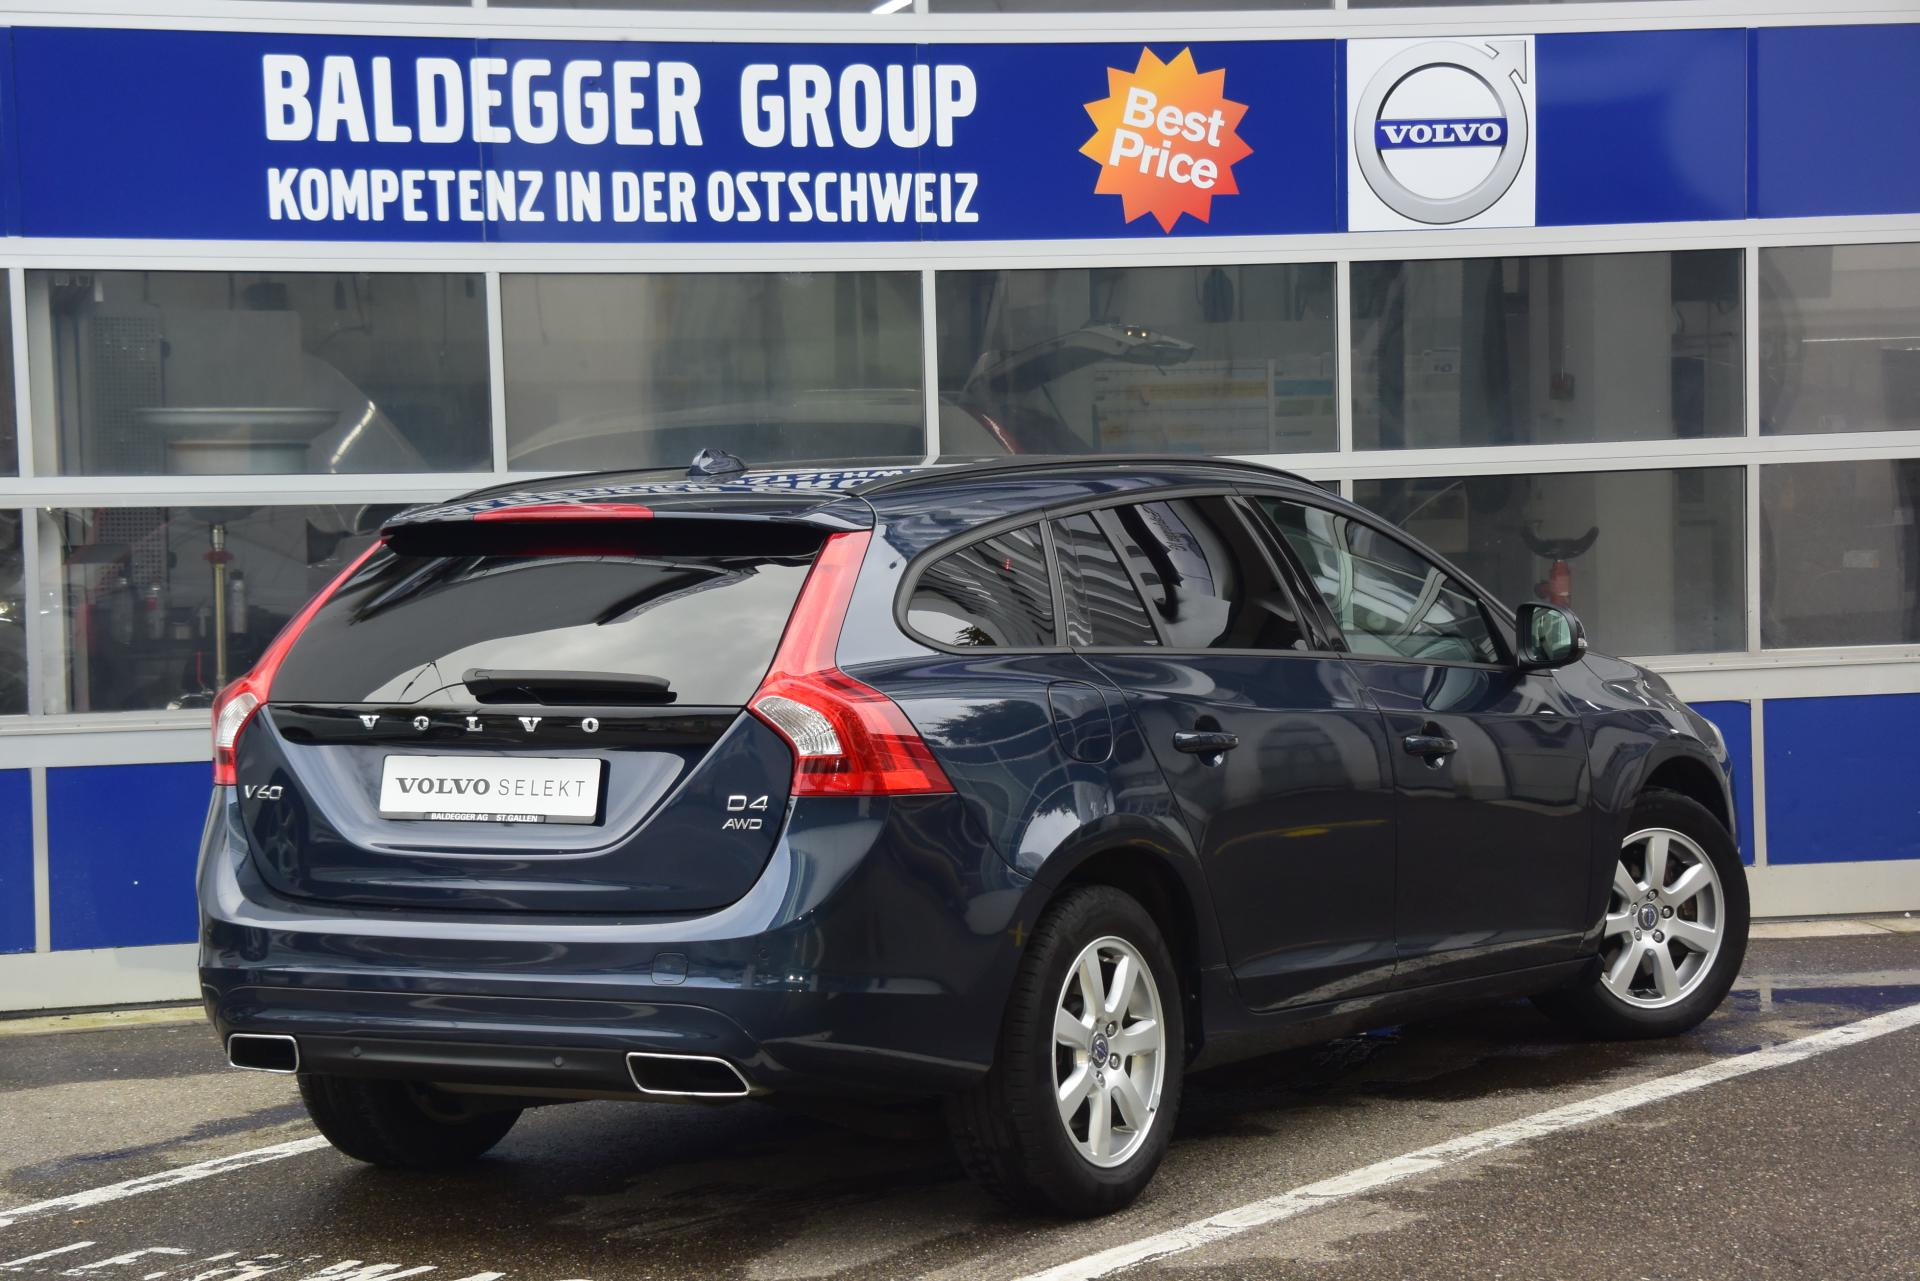 volvo v60 d4 awd family edition baldegger automobile ag. Black Bedroom Furniture Sets. Home Design Ideas